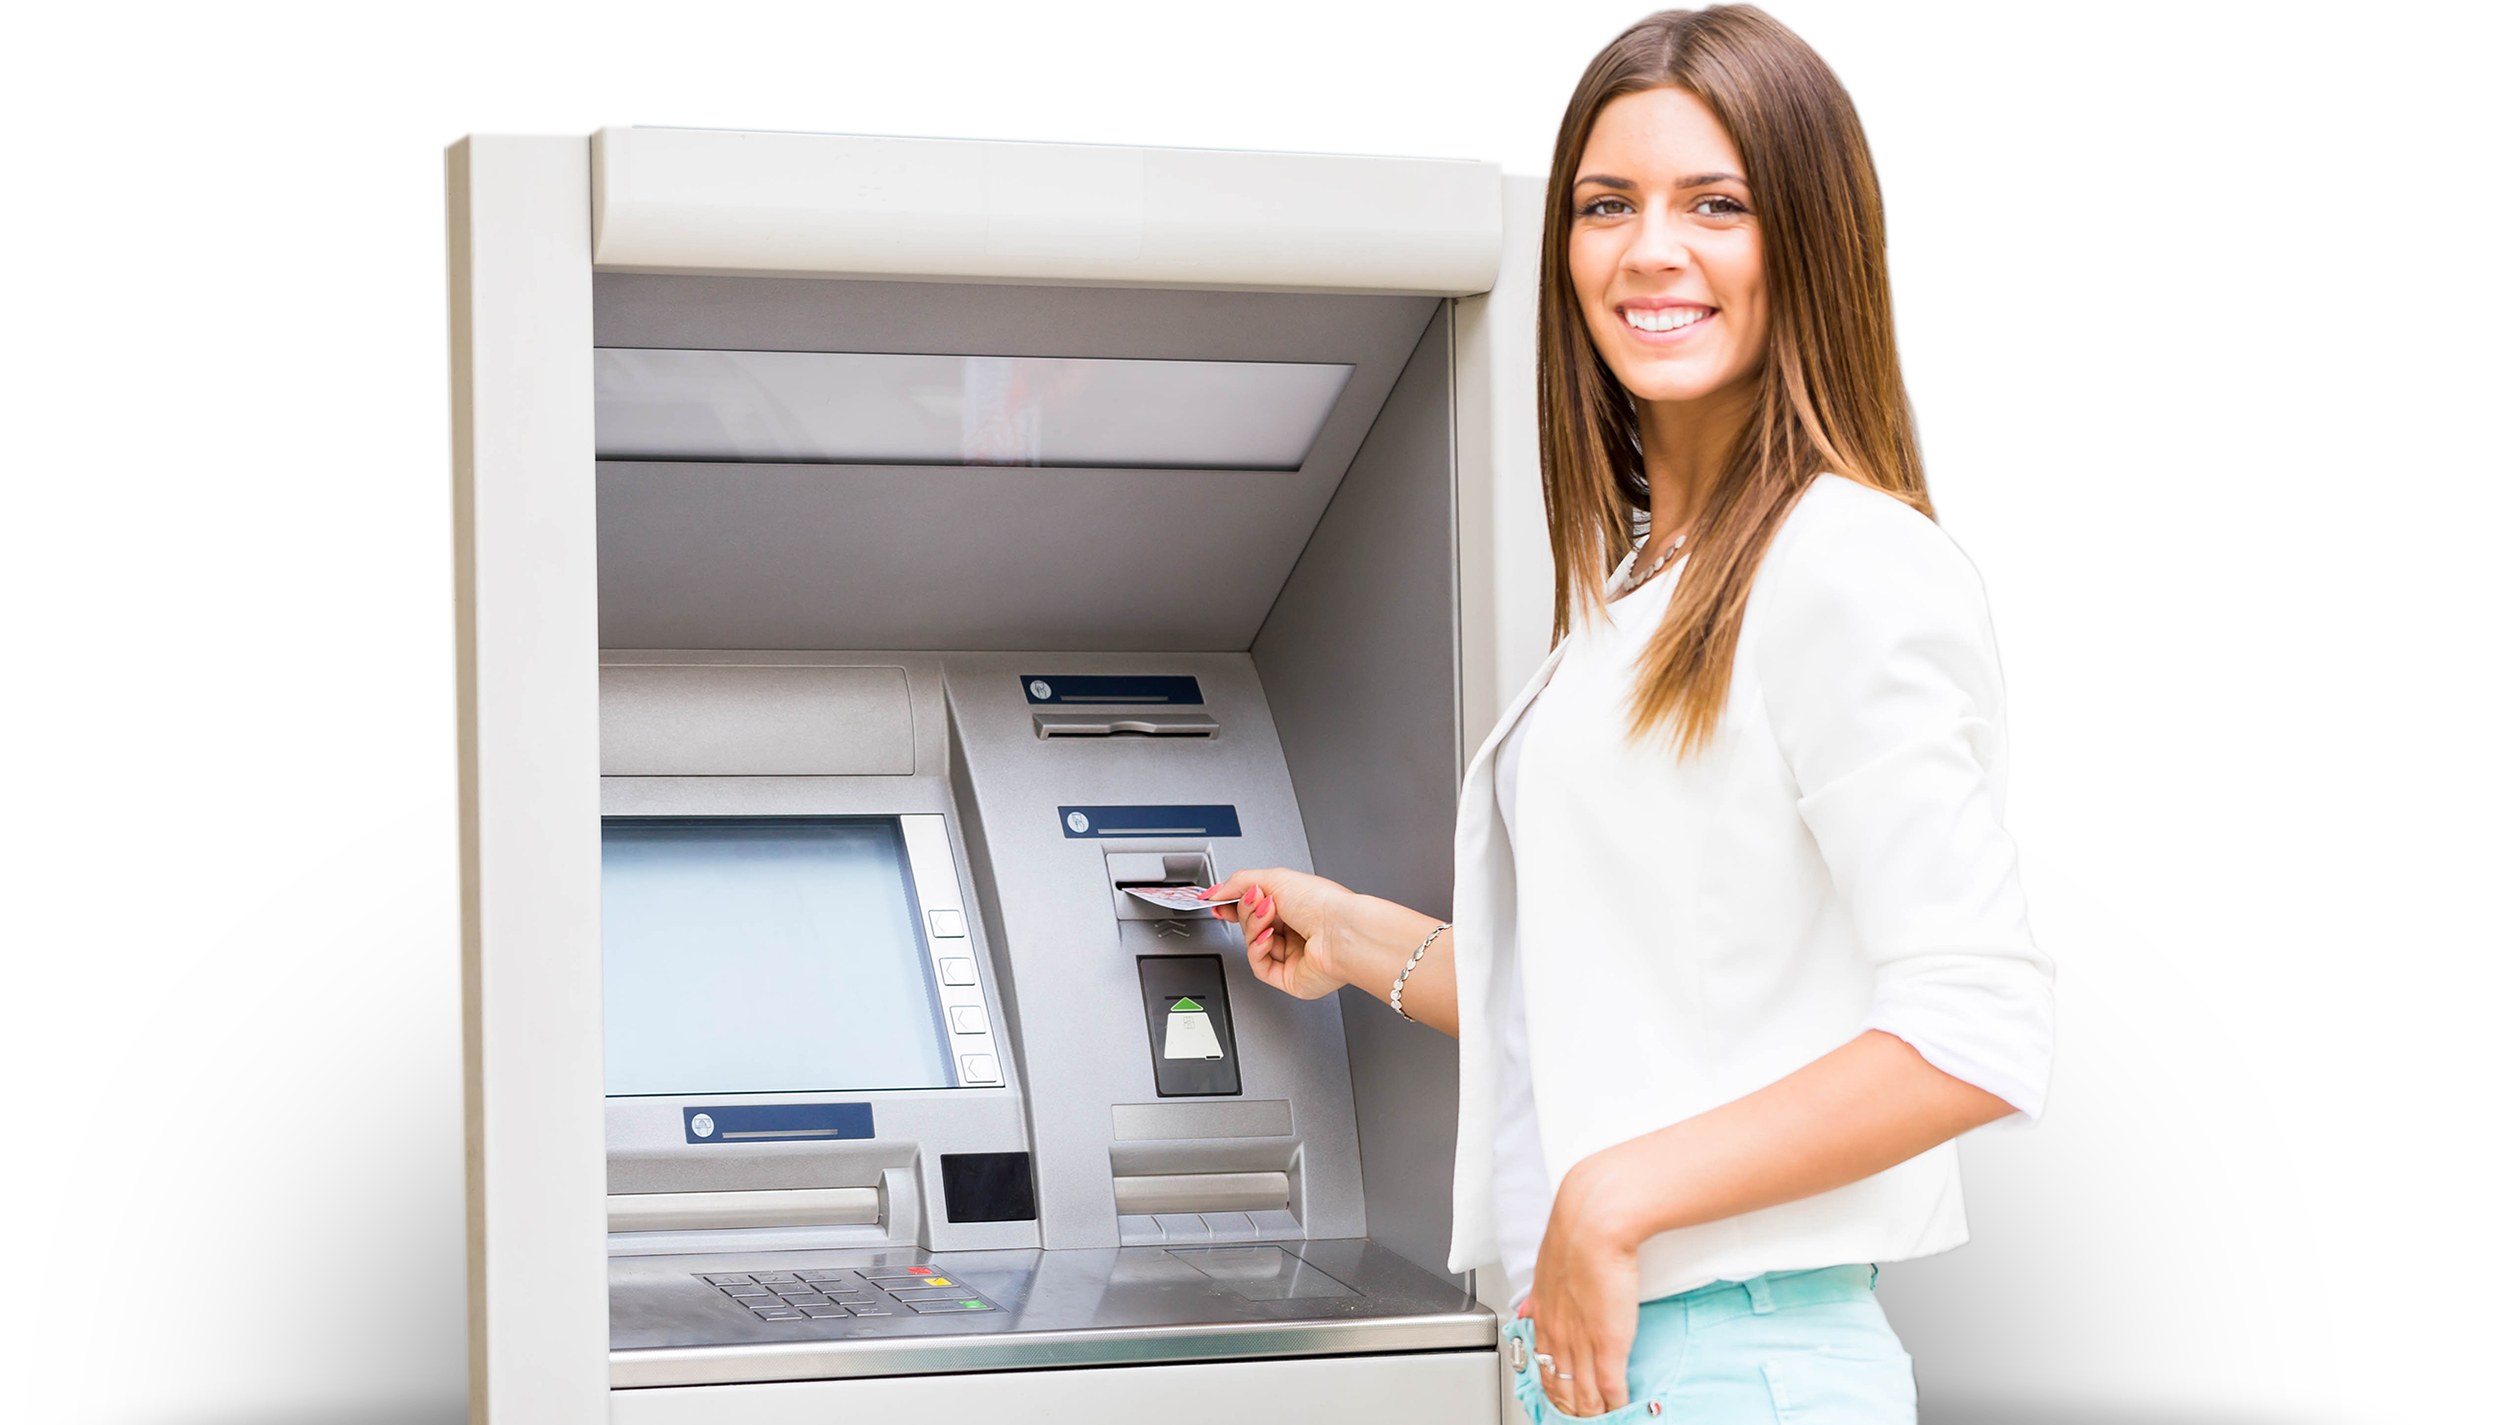 ATM happy customer no explosion